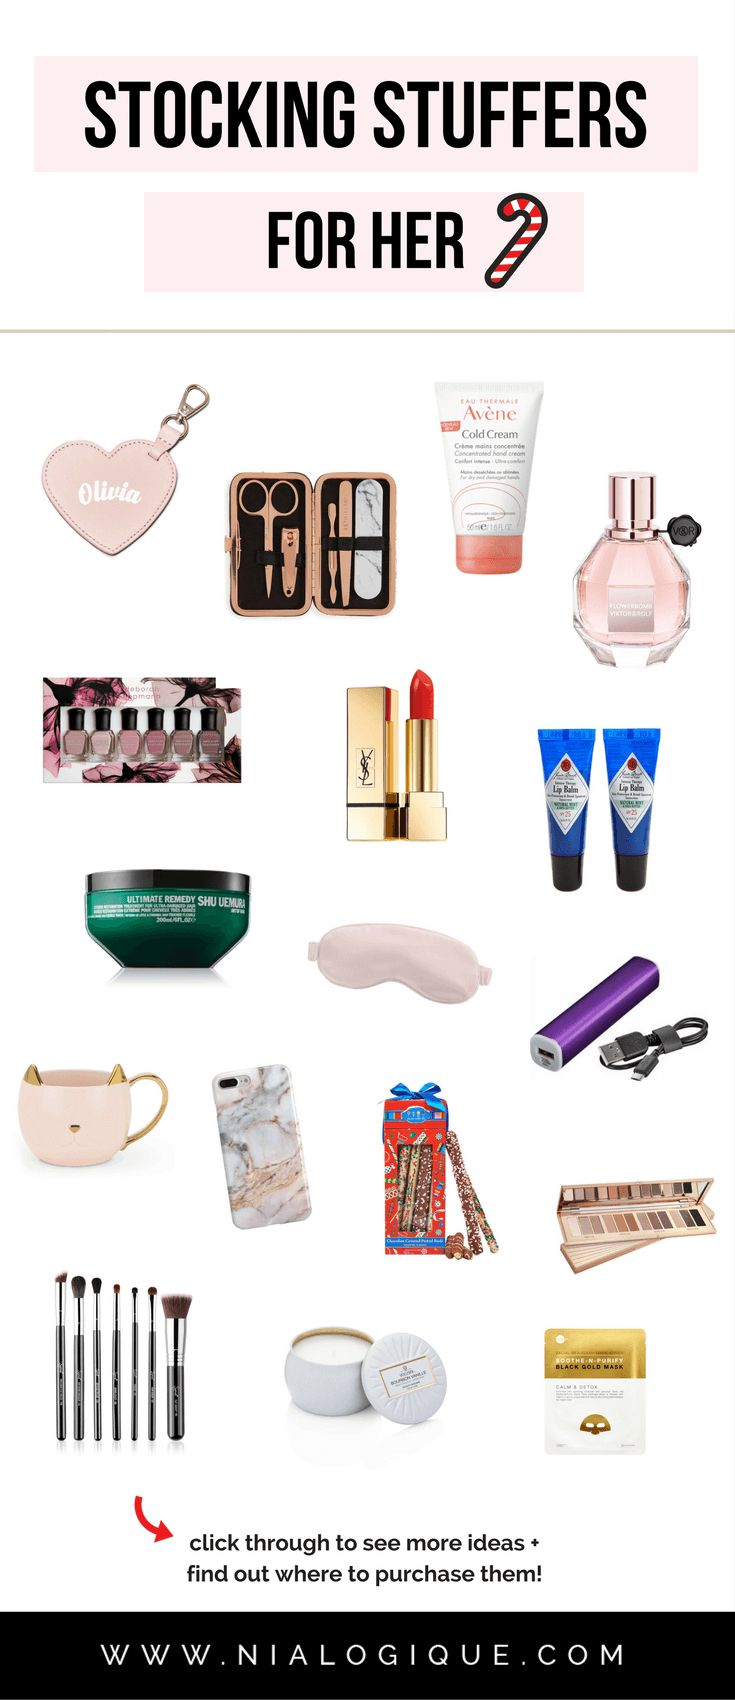 Gift Guide: Stocking Stuffer Ideas For Her | 20 small-sized Christmas gifts for your girlfriend, wife, daughter, friend, coworker, mother, or aunt. | #beauty #giftguide #christmas #holidays #birthday #valentinesday #giftsforher #giftideas